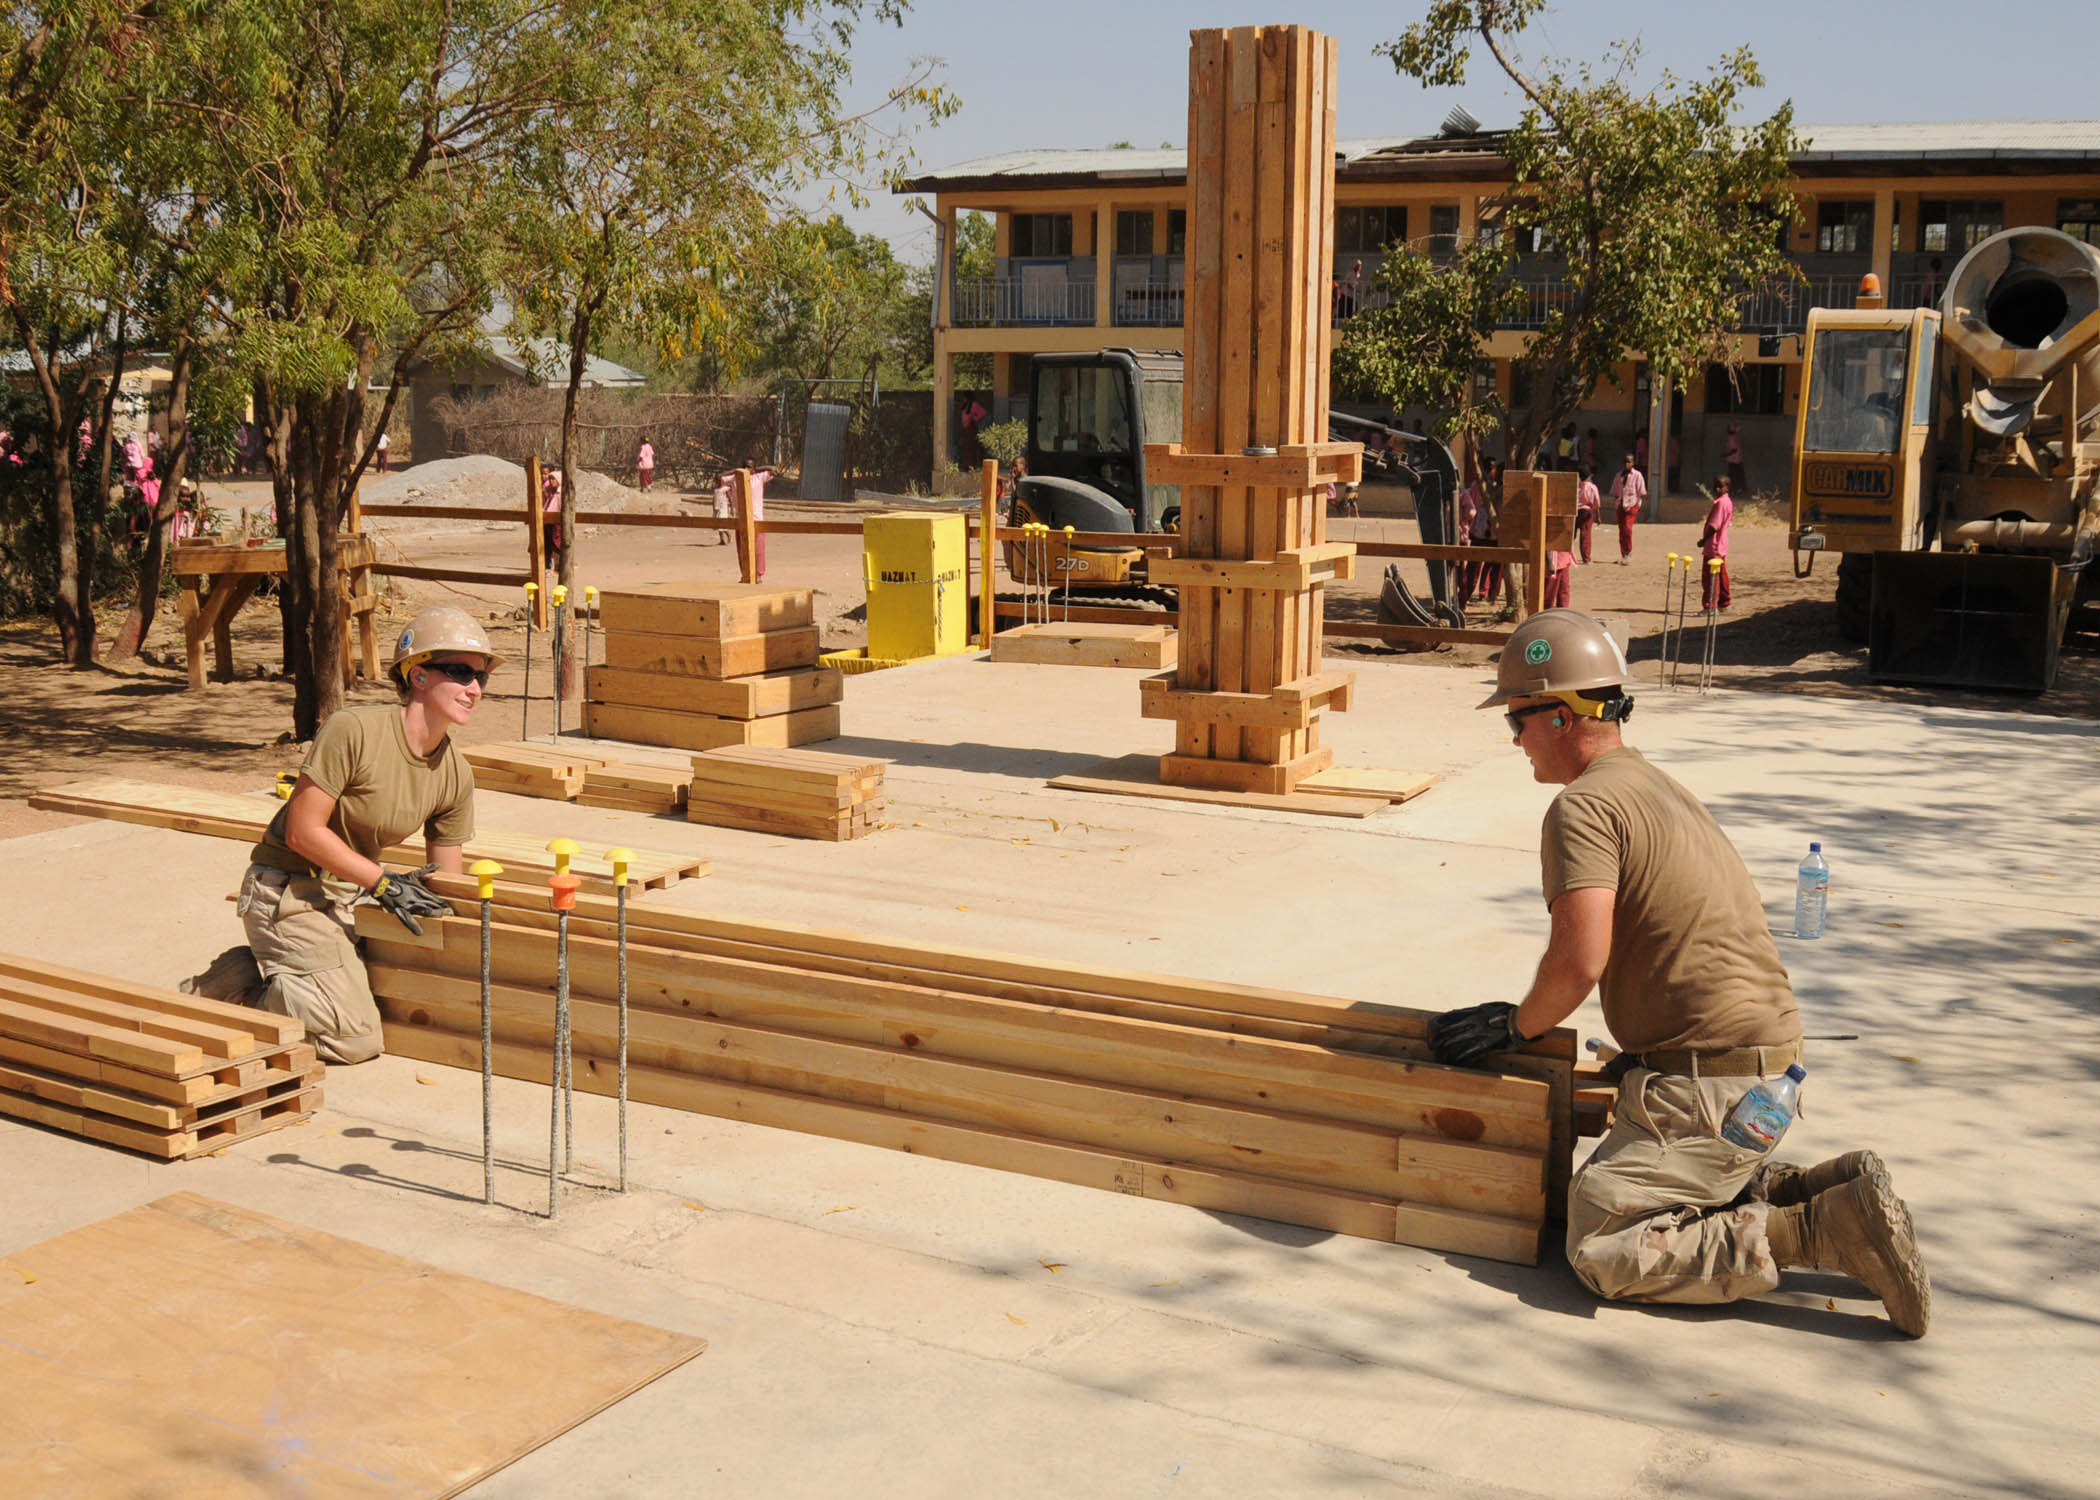 File:US Navy 110311-N-SN160-008 Seabees uild lumber forms for